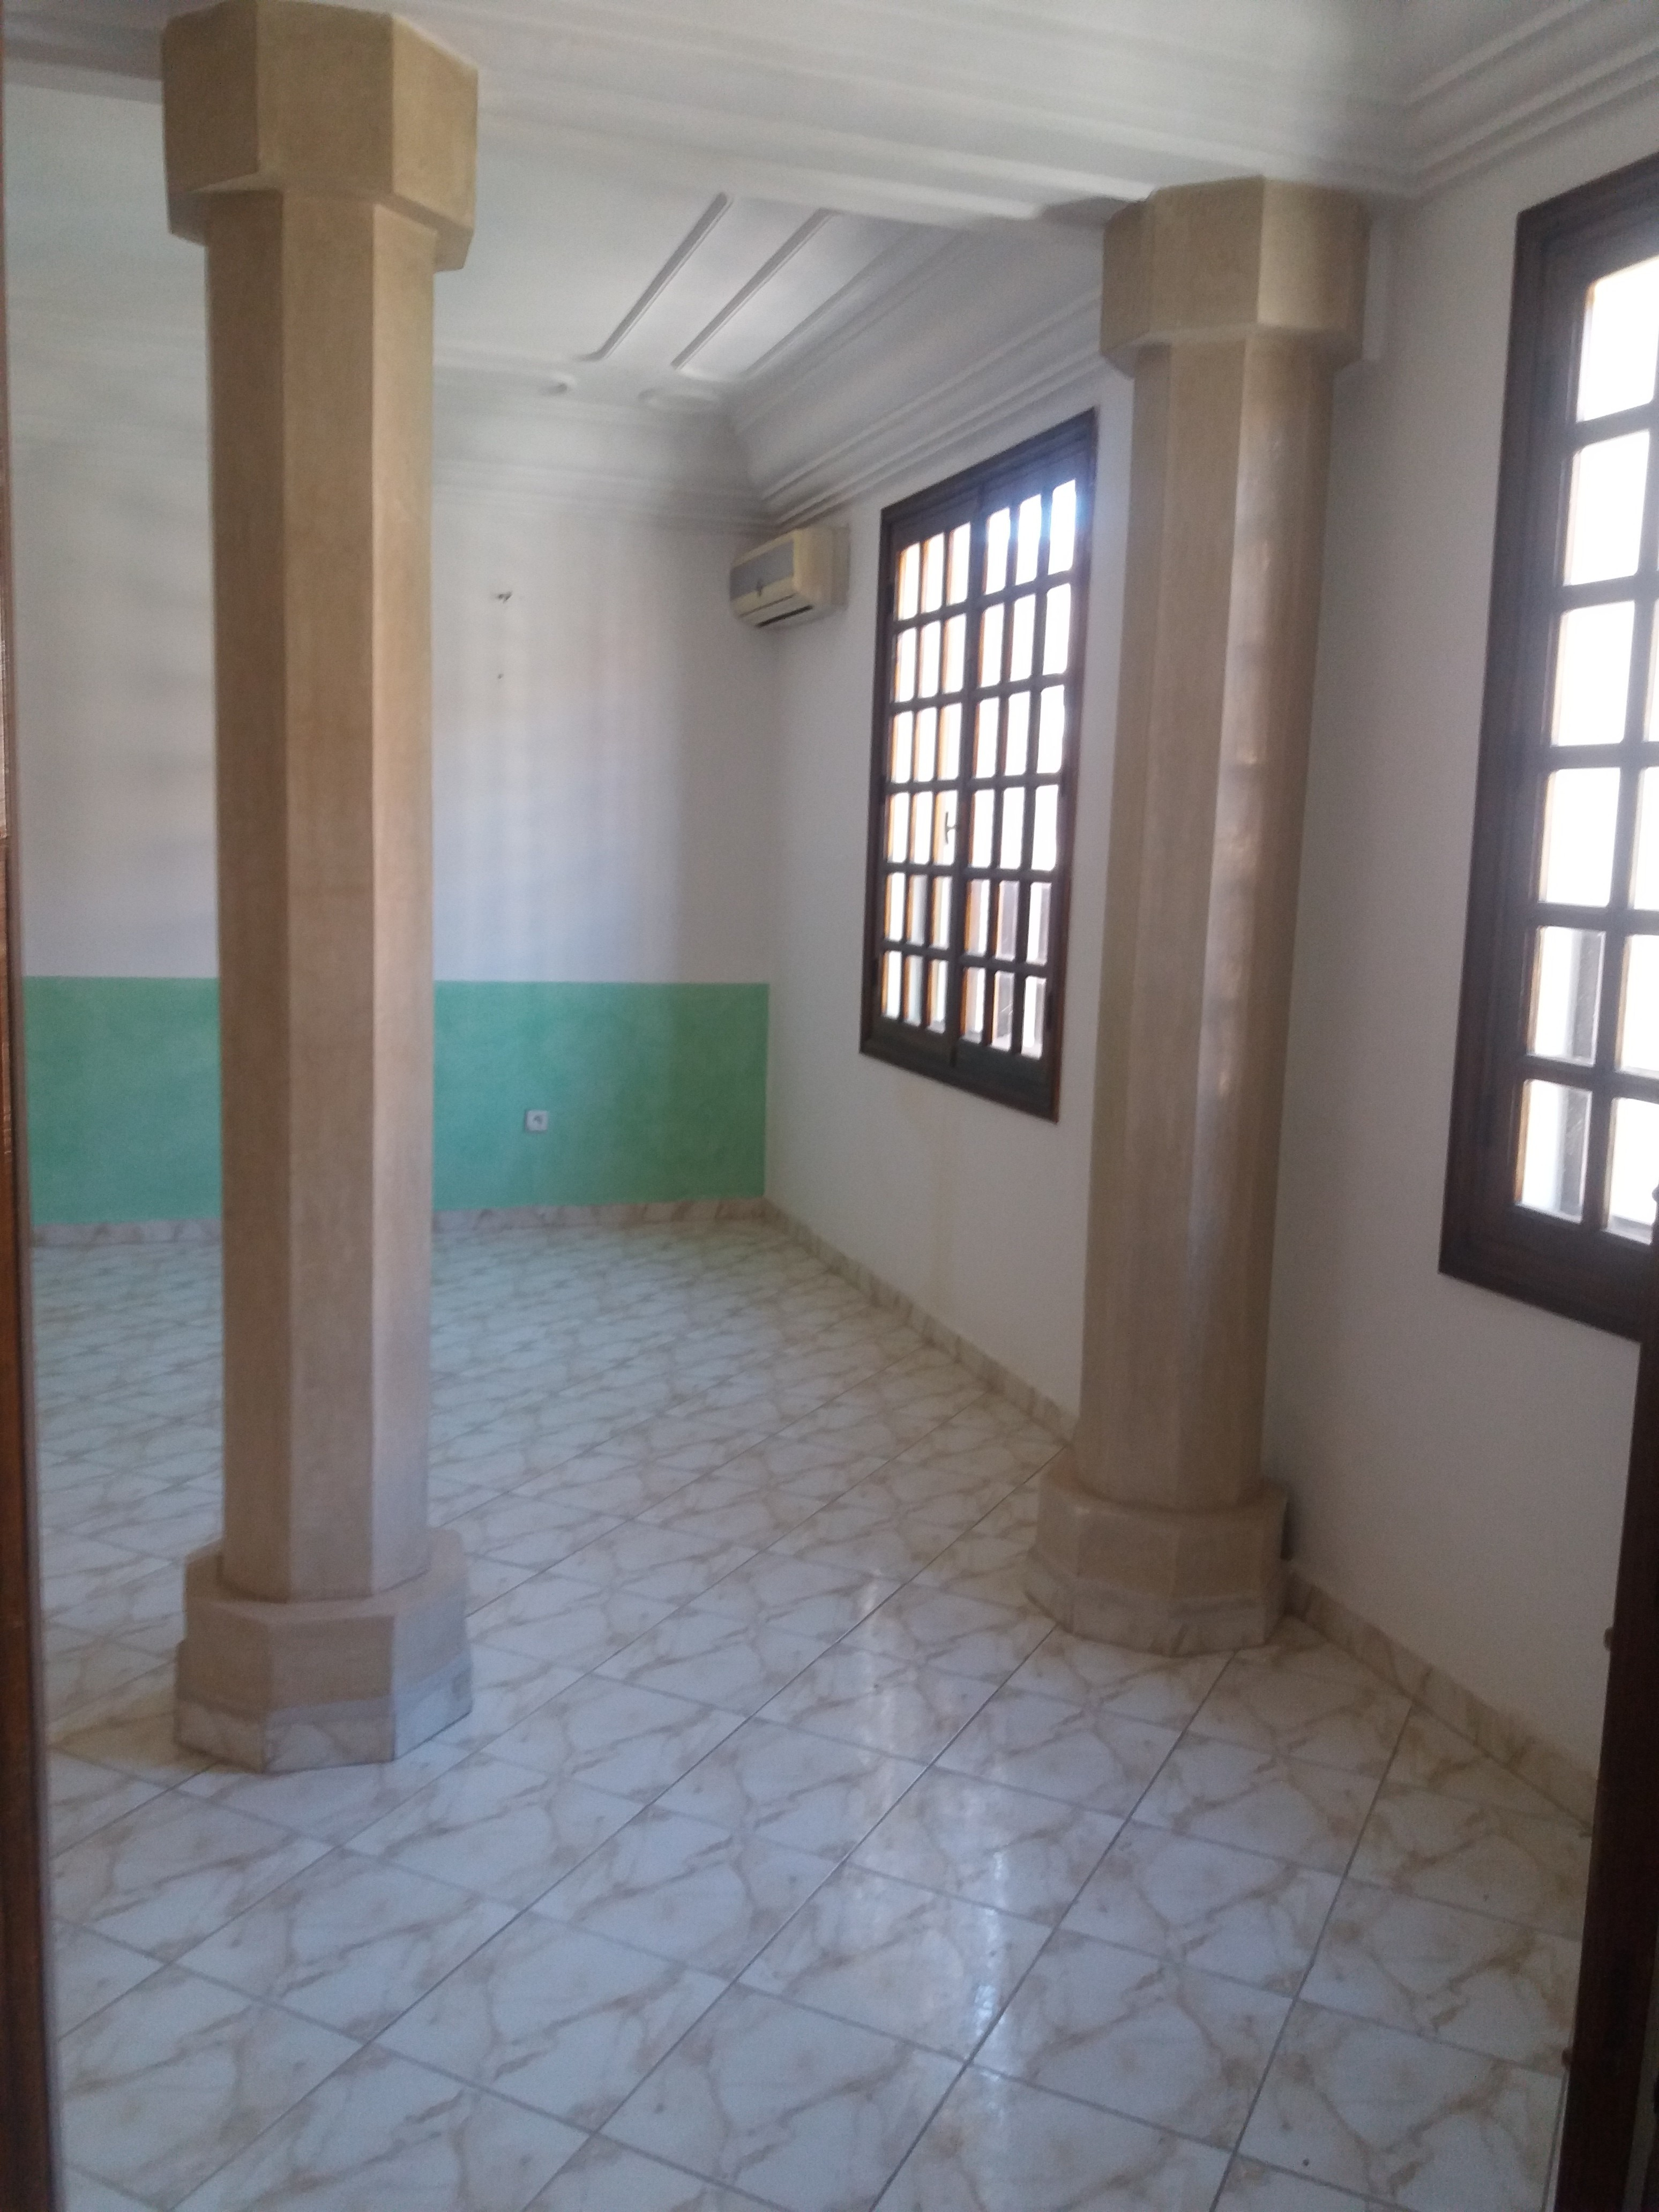 Location <strong>Appartement</strong> Marrakech Guéliz <strong>118 m2</strong>